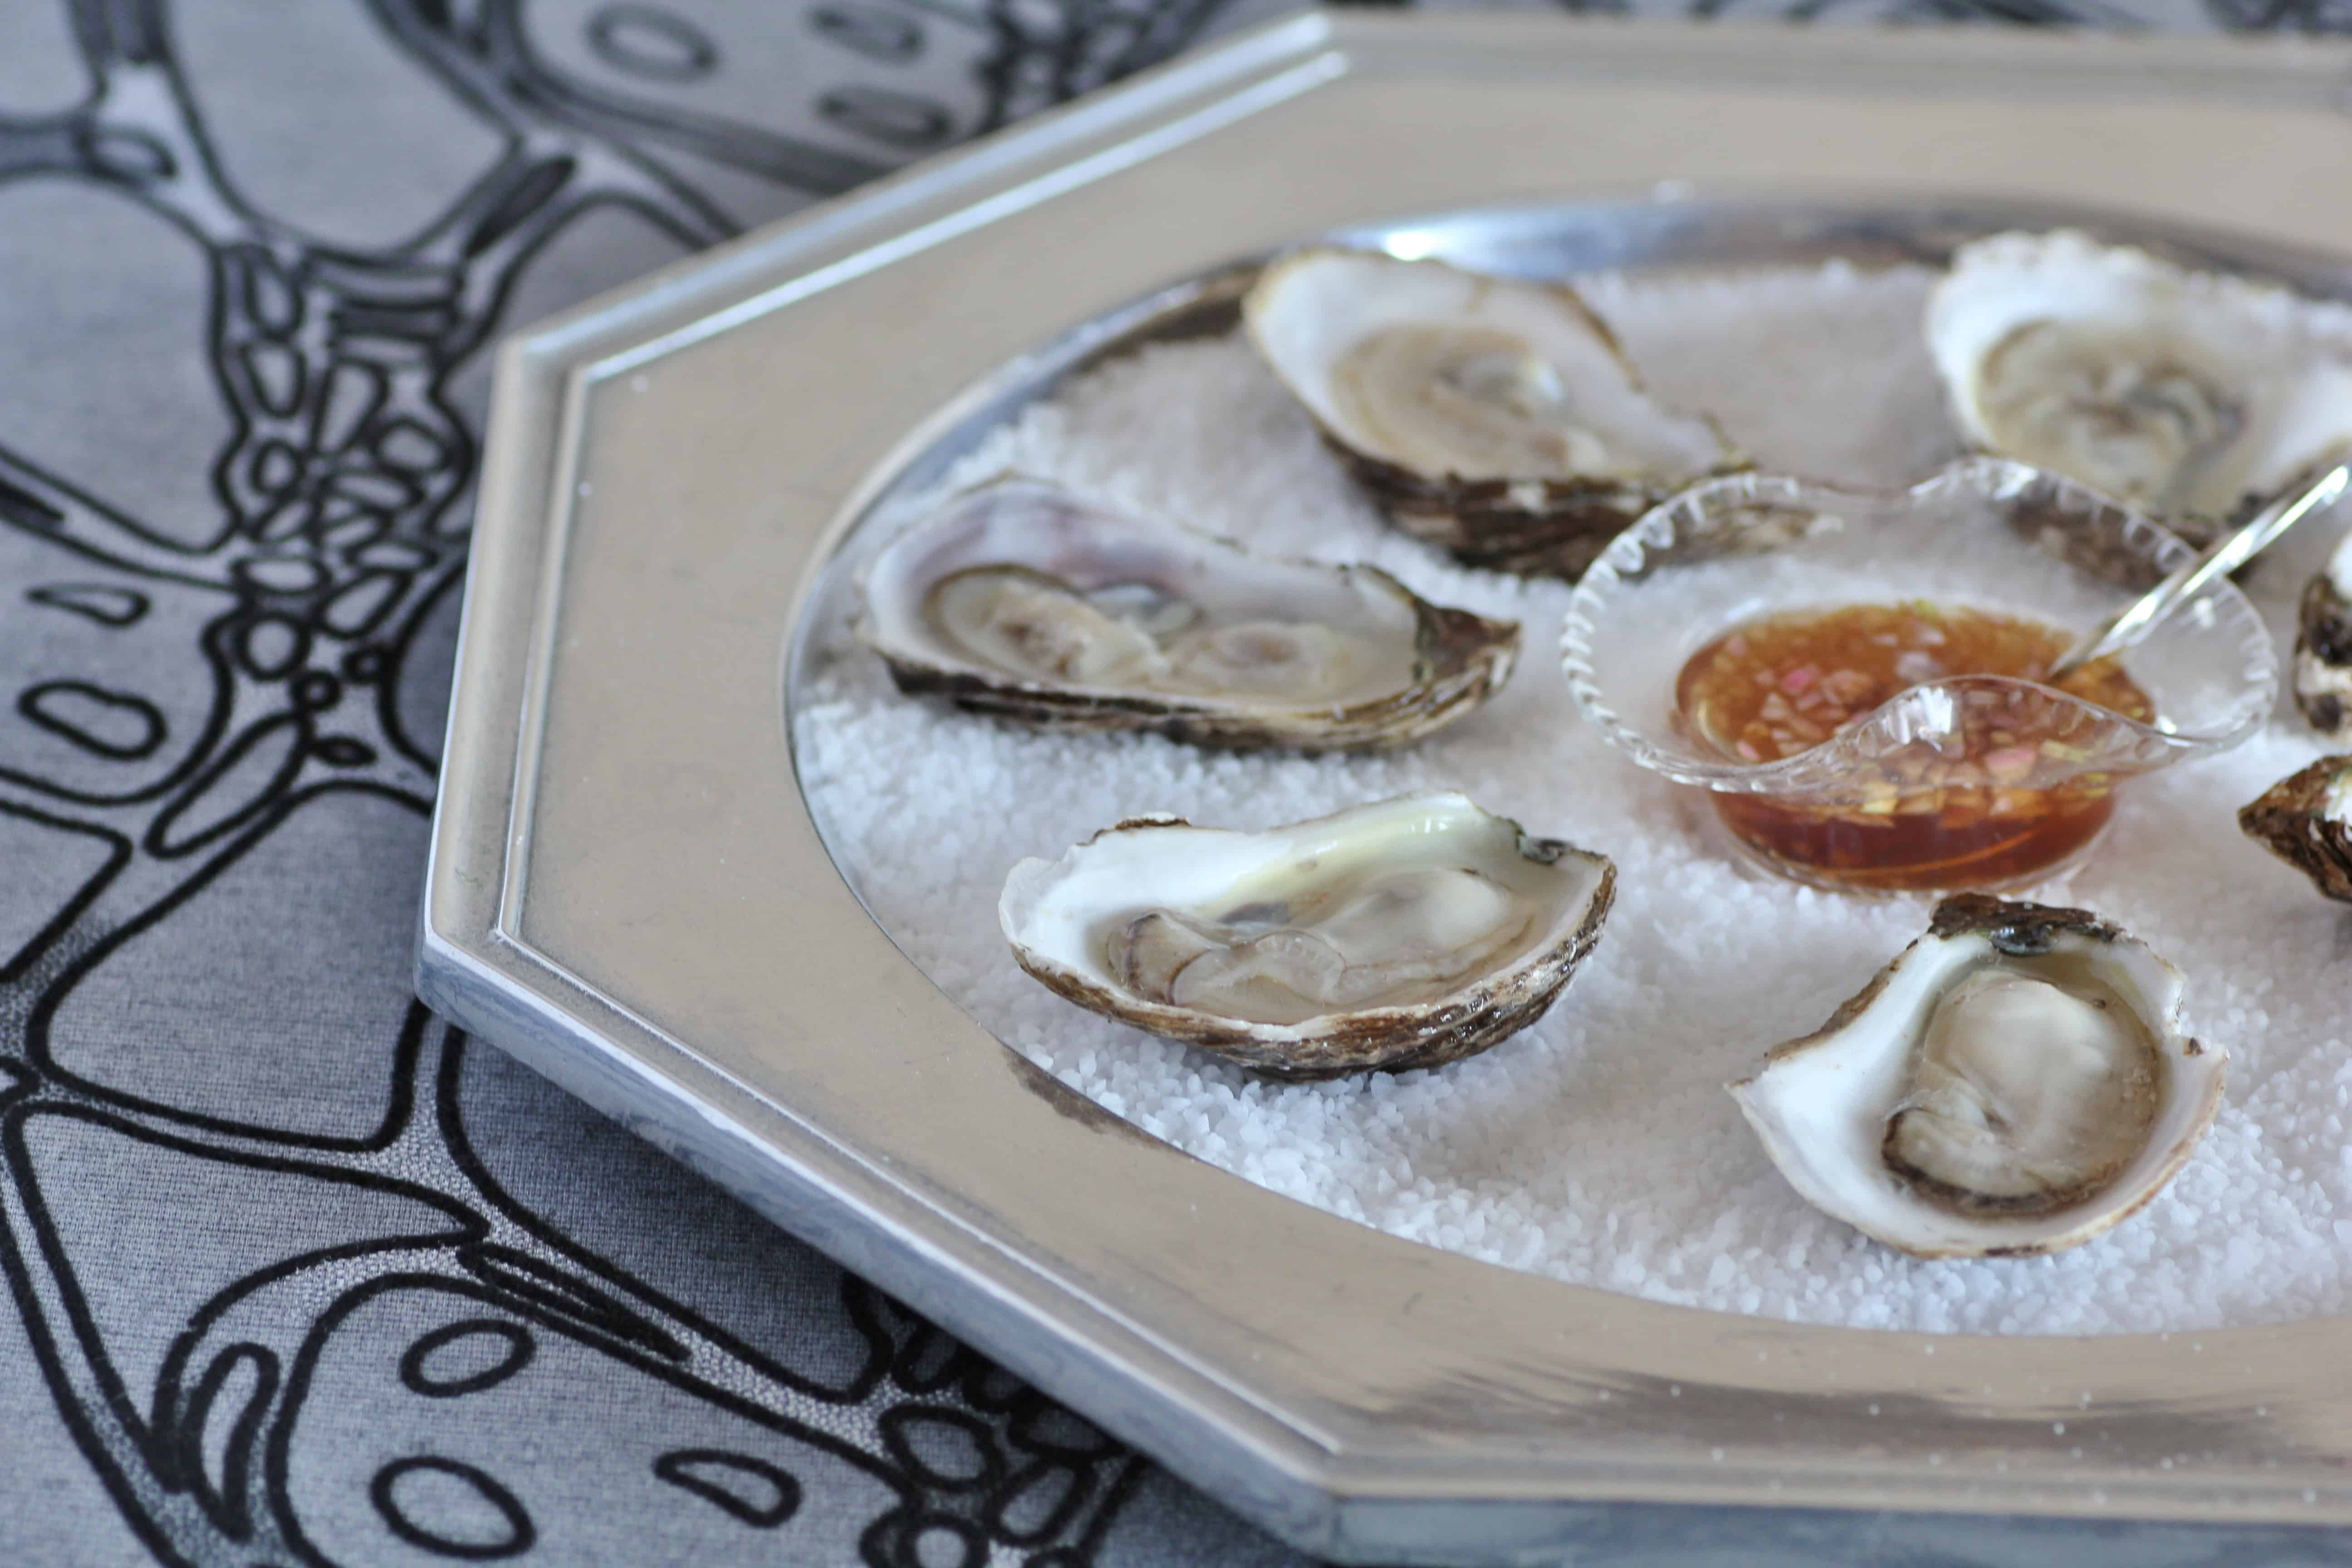 ... immediately with the mignonette sauce hot sauce and lemon wedges enjoy